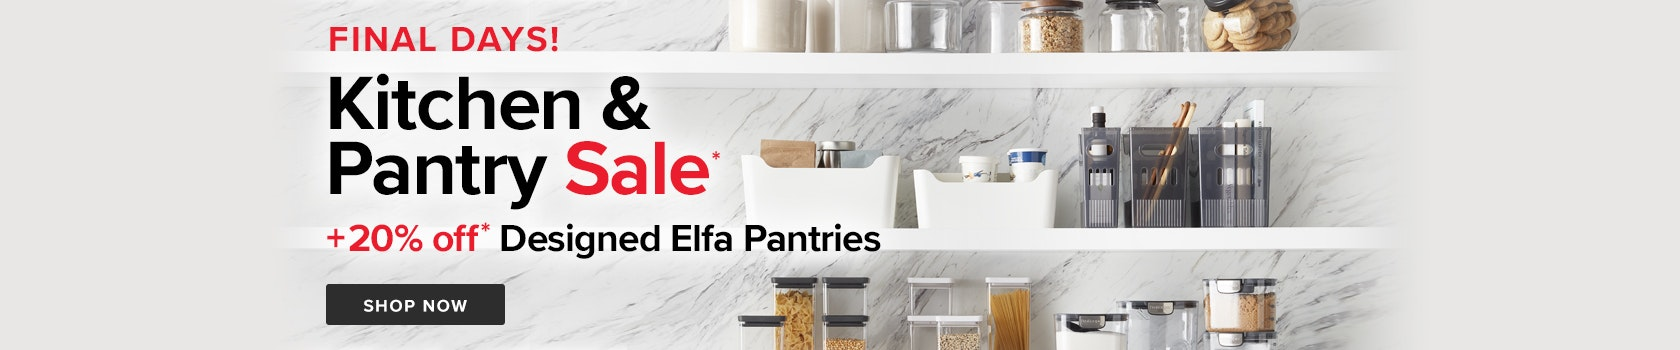 FINAL DAYS! Kitchen & Pantry Sale